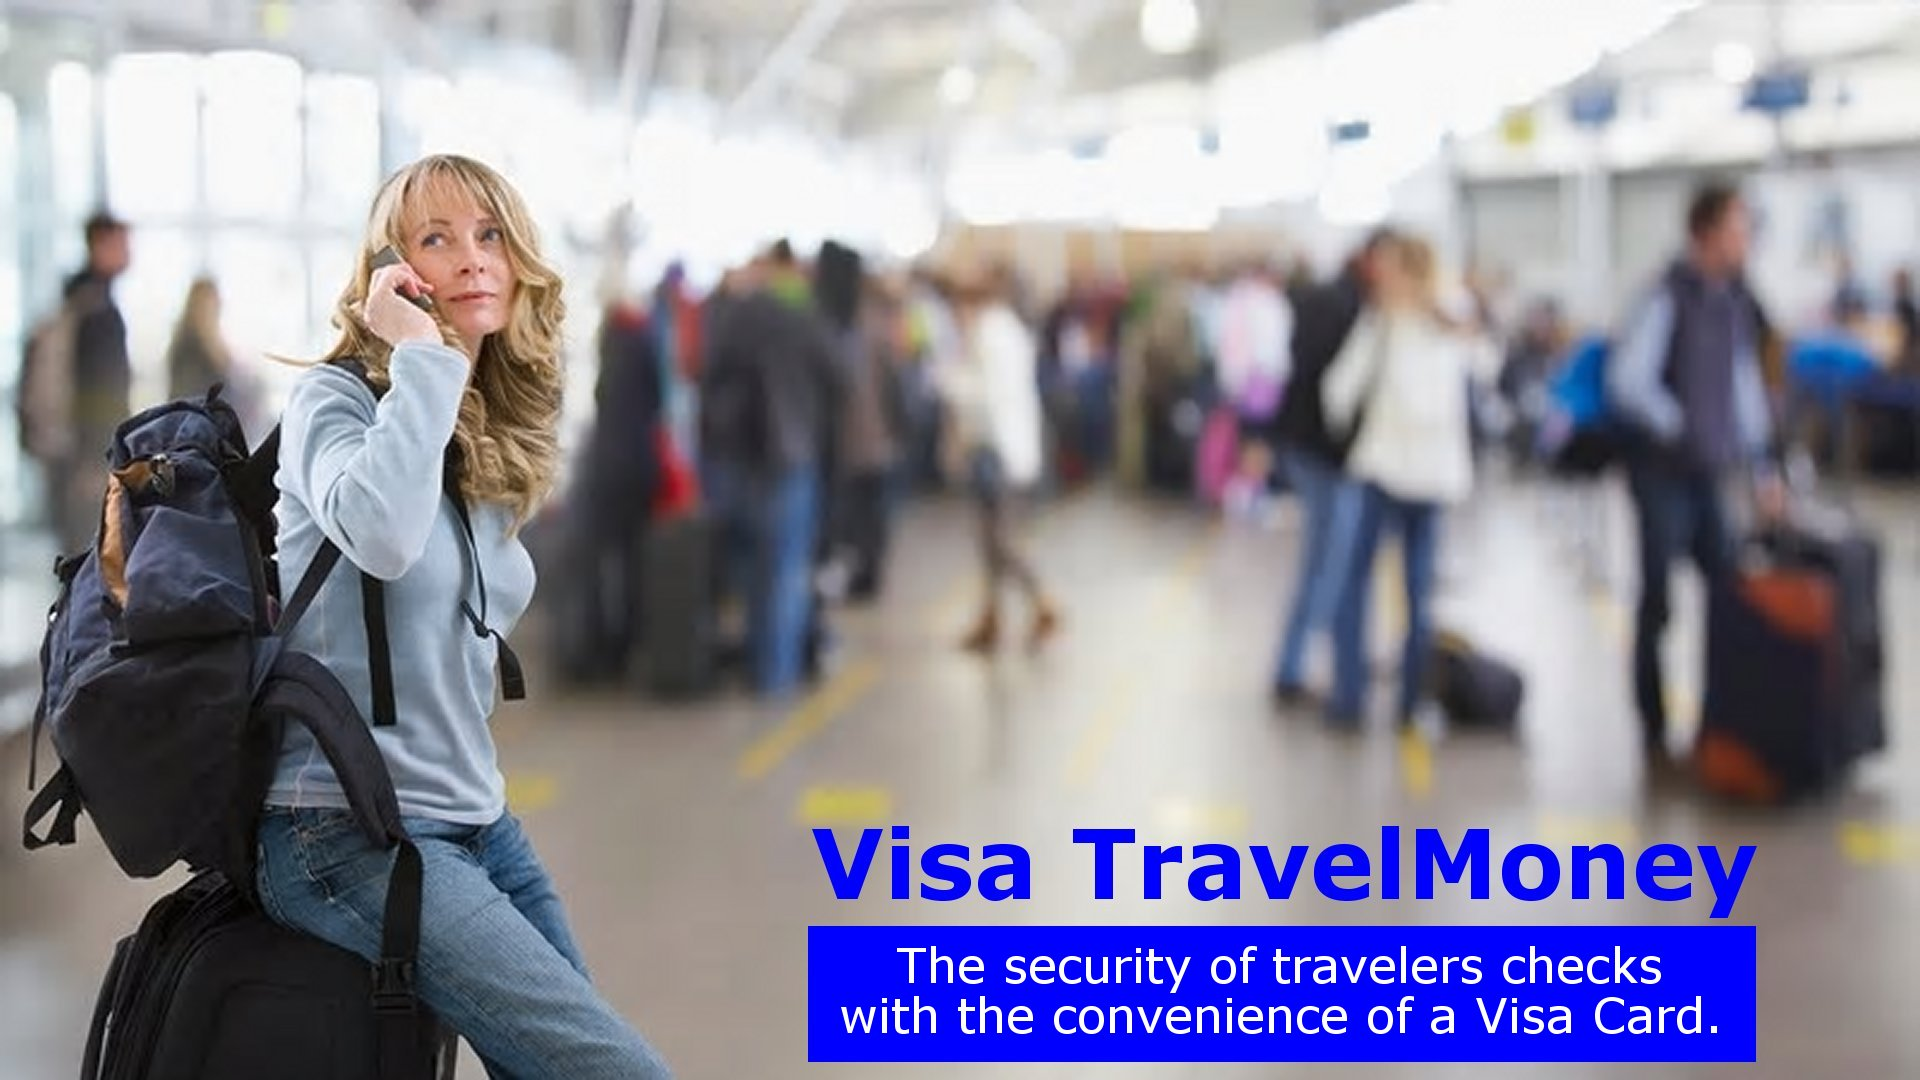 Visa TravelMoney: the security of travelers checks with the convenience of a Visa card.